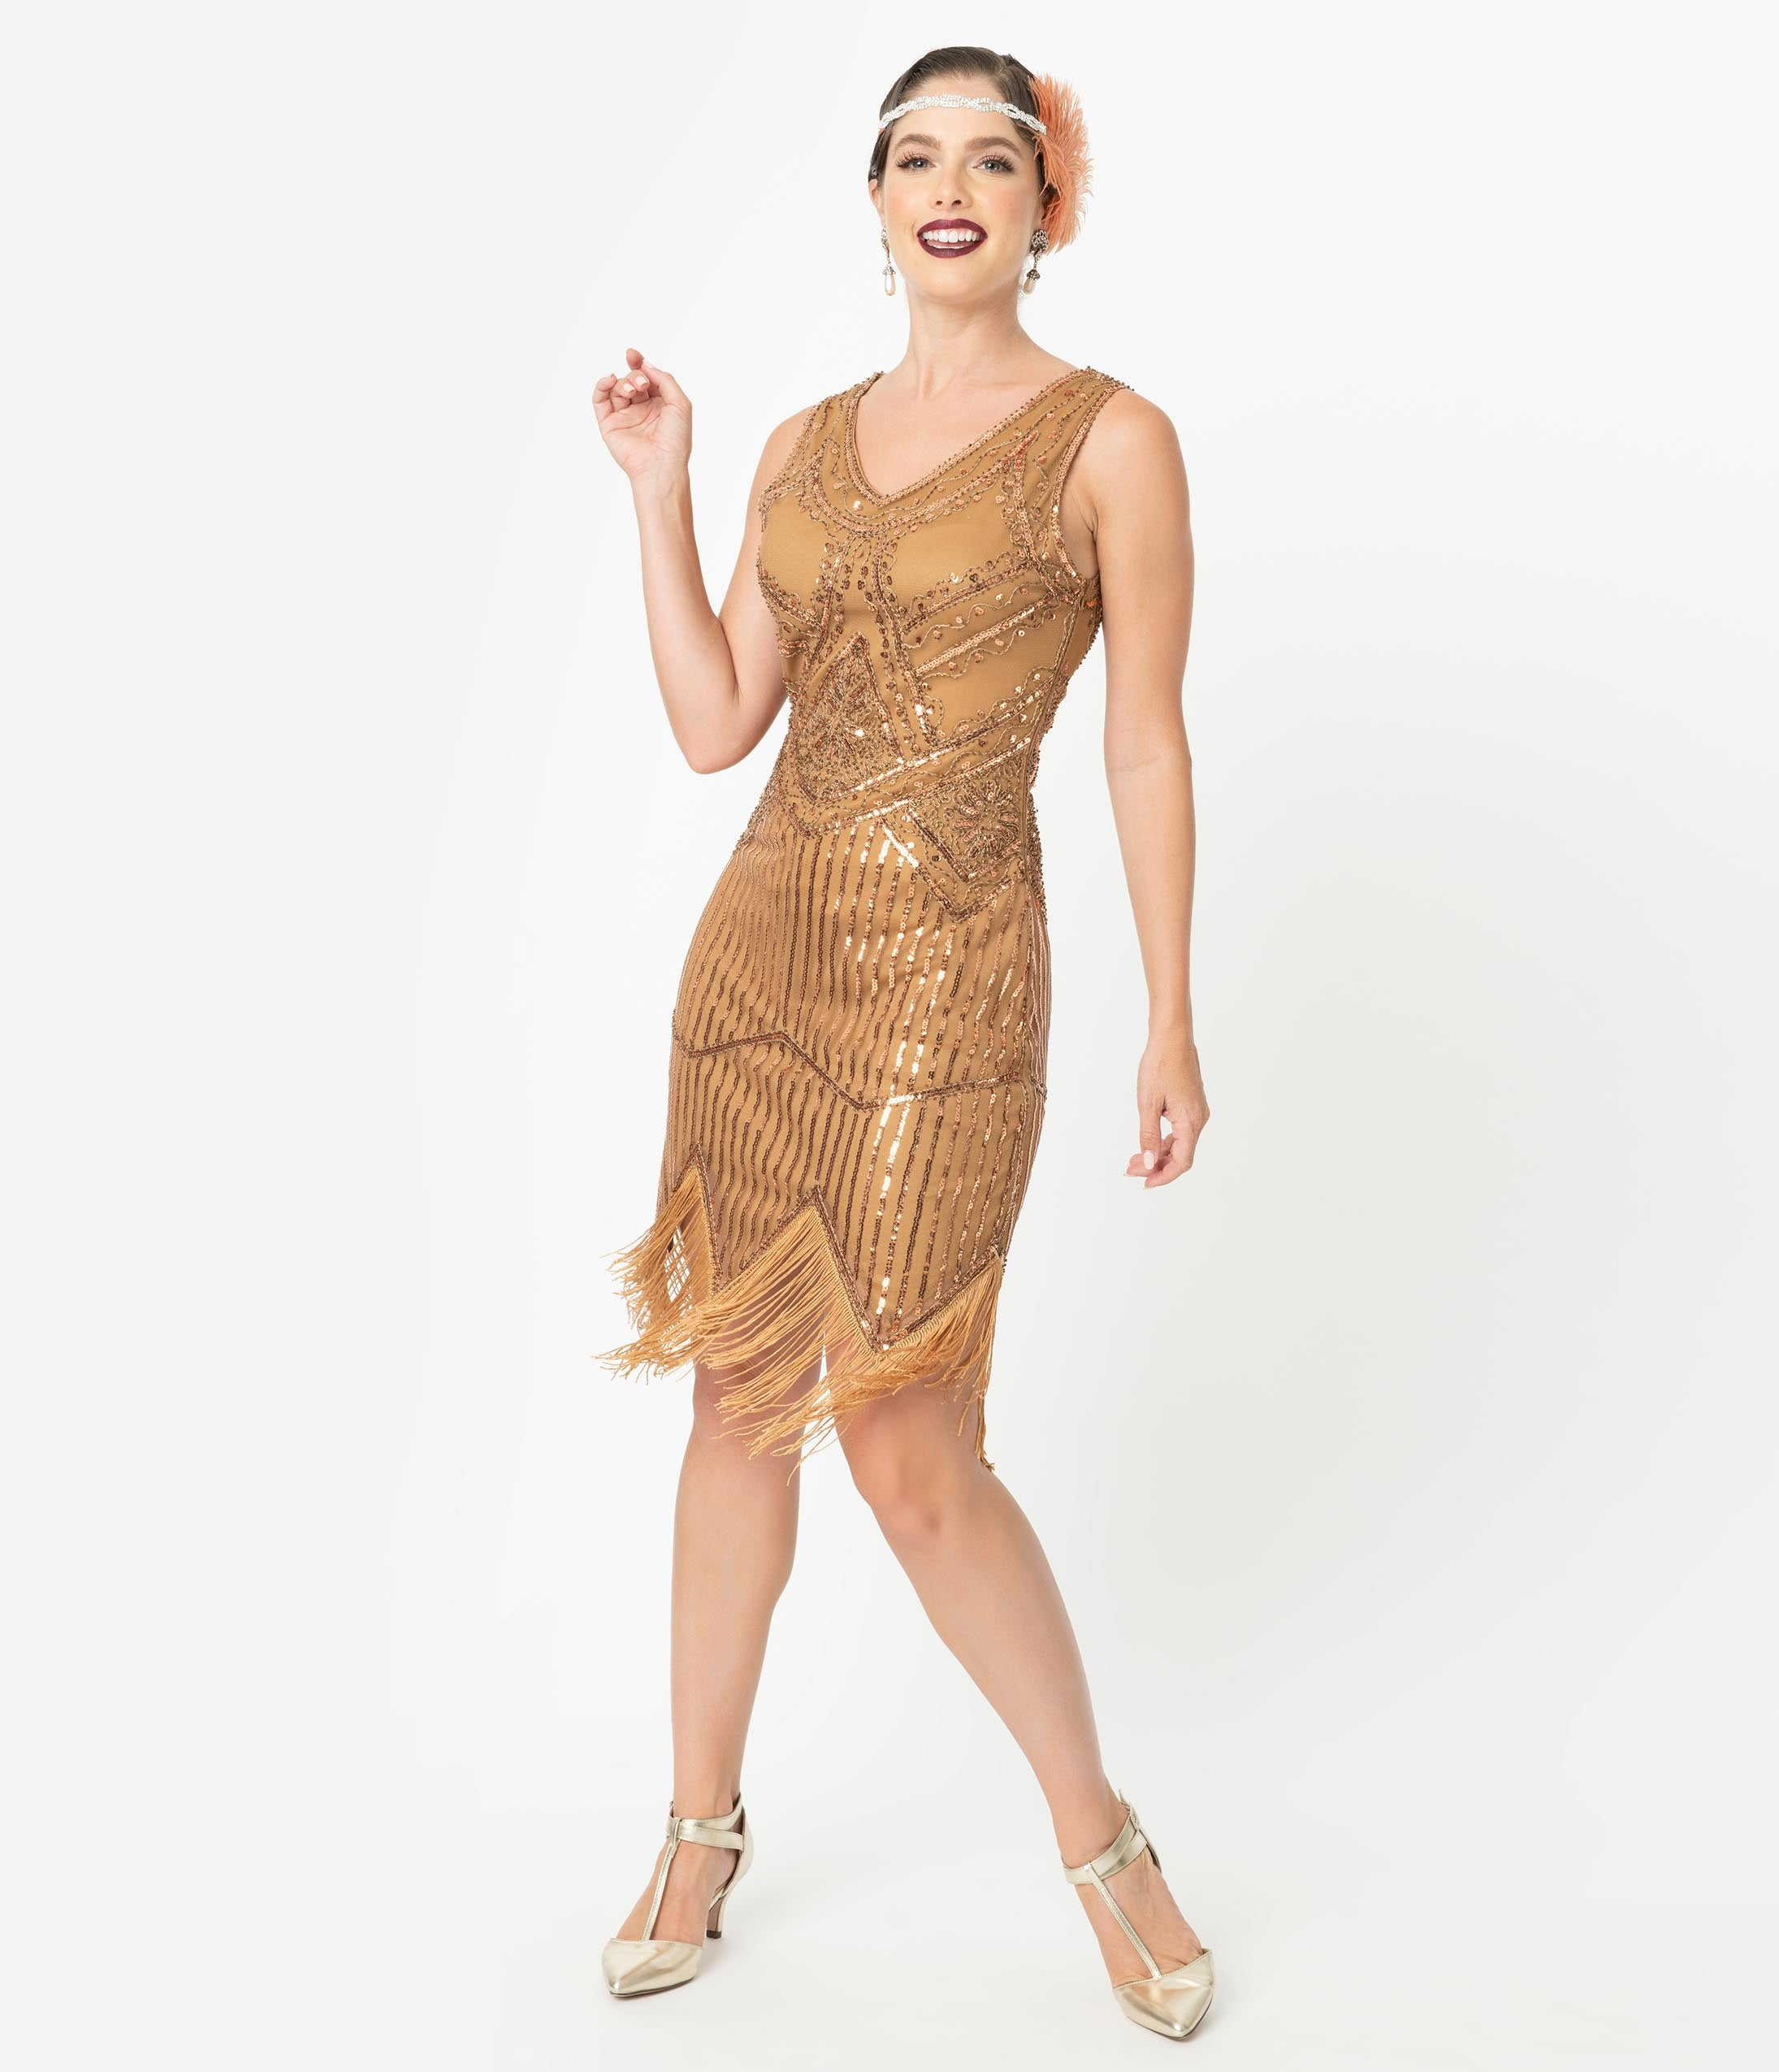 1920s Costumes: Flapper, Great Gatsby, Gangster Girl Unique Vintage 1920S Bronze Beaded Sequin Juliette Fringe Flapper Dress $98.00 AT vintagedancer.com